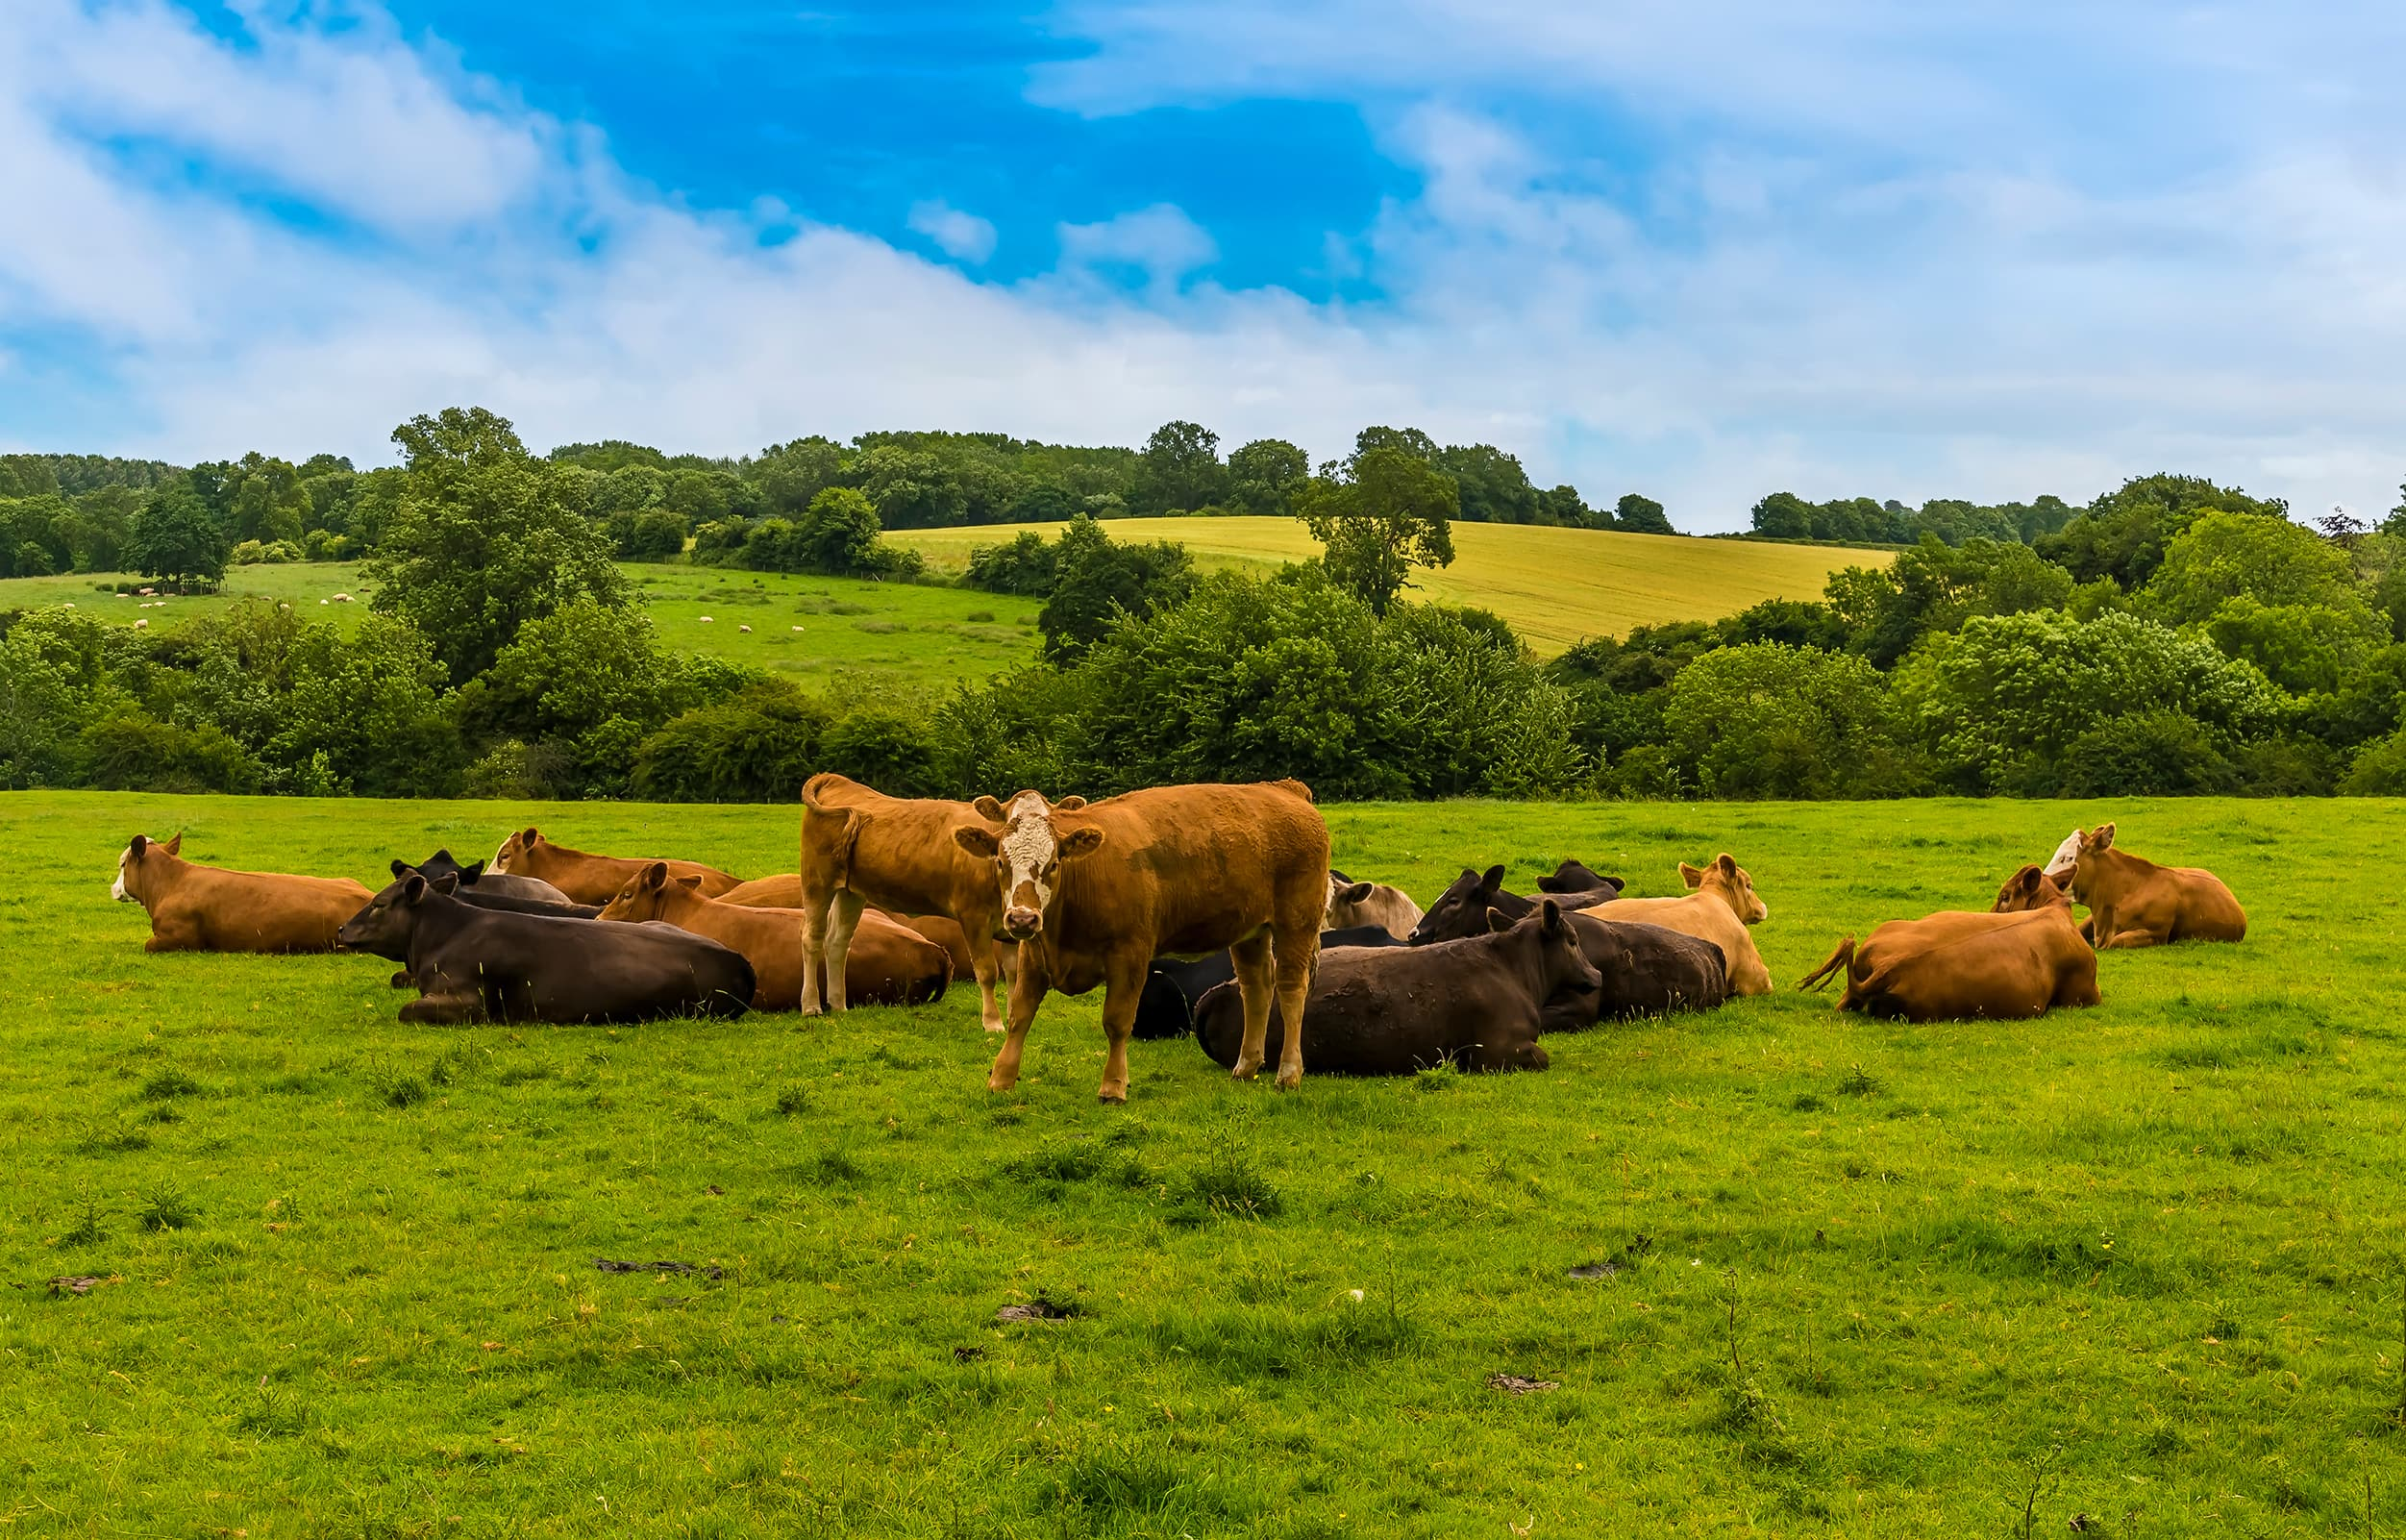 Herd of cows in the summertime - Bovine TB